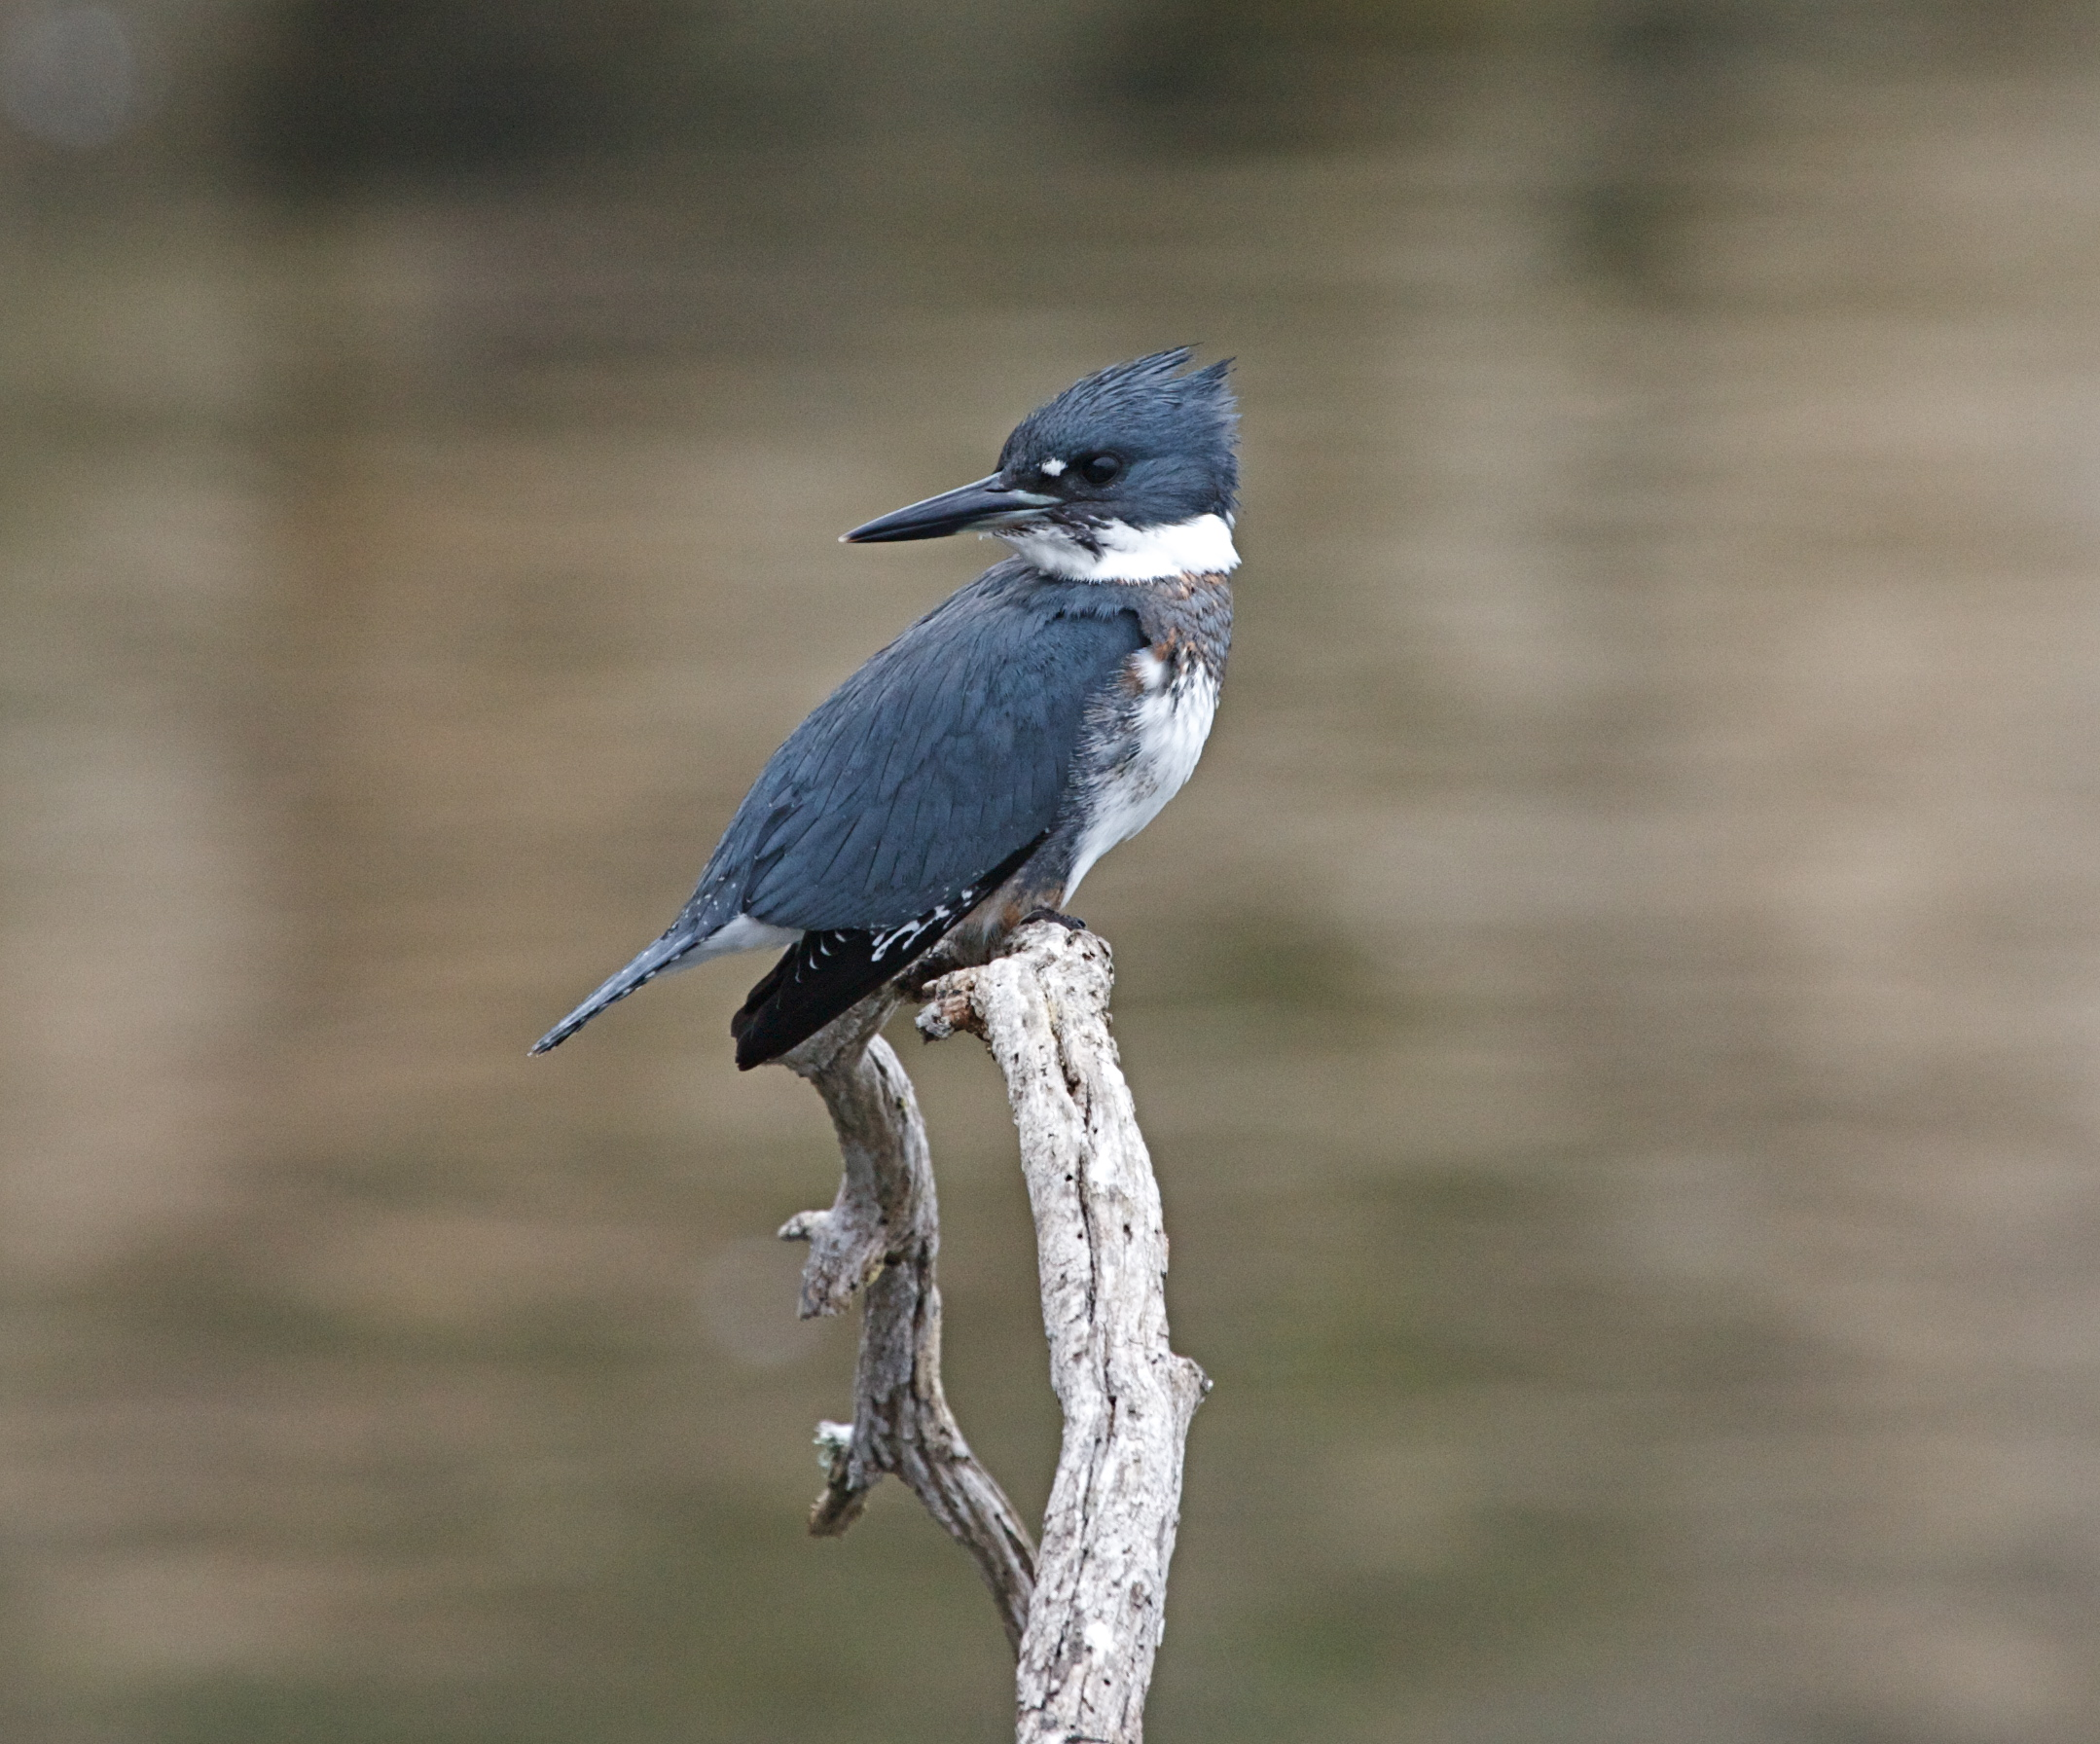 https://upload.wikimedia.org/wikipedia/commons/7/74/Belted_Kingfisher_m..jpg